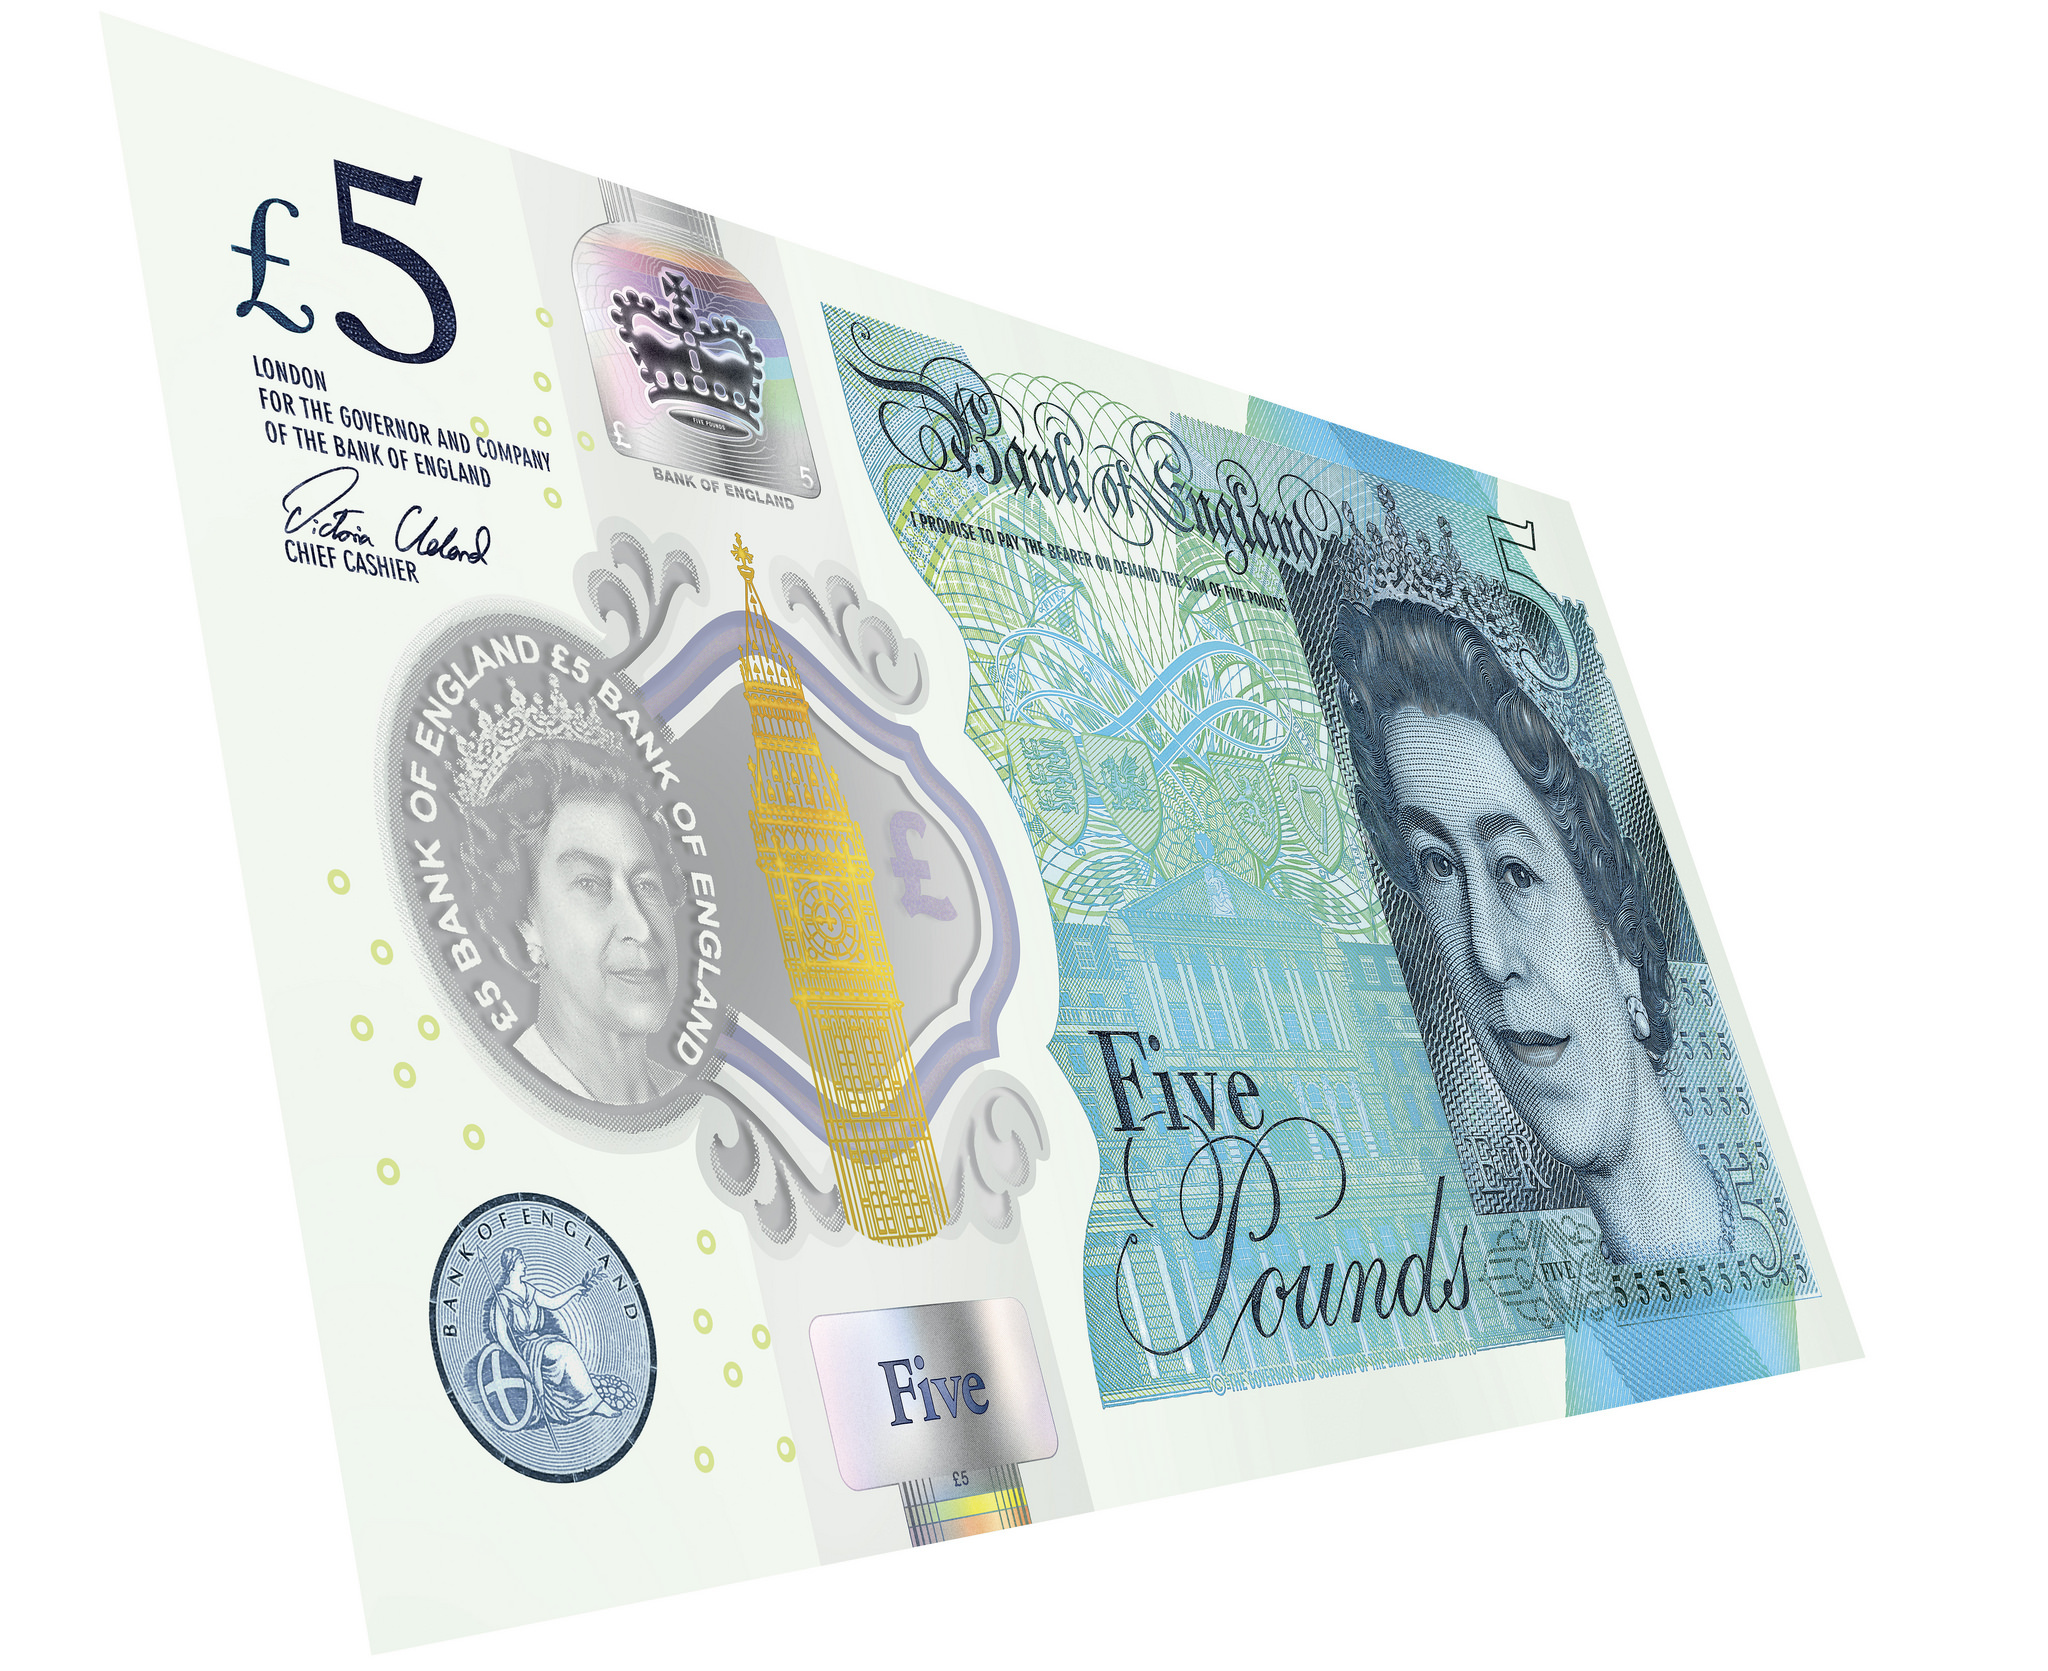 Old £5 notes cease to be legal tender from May 5